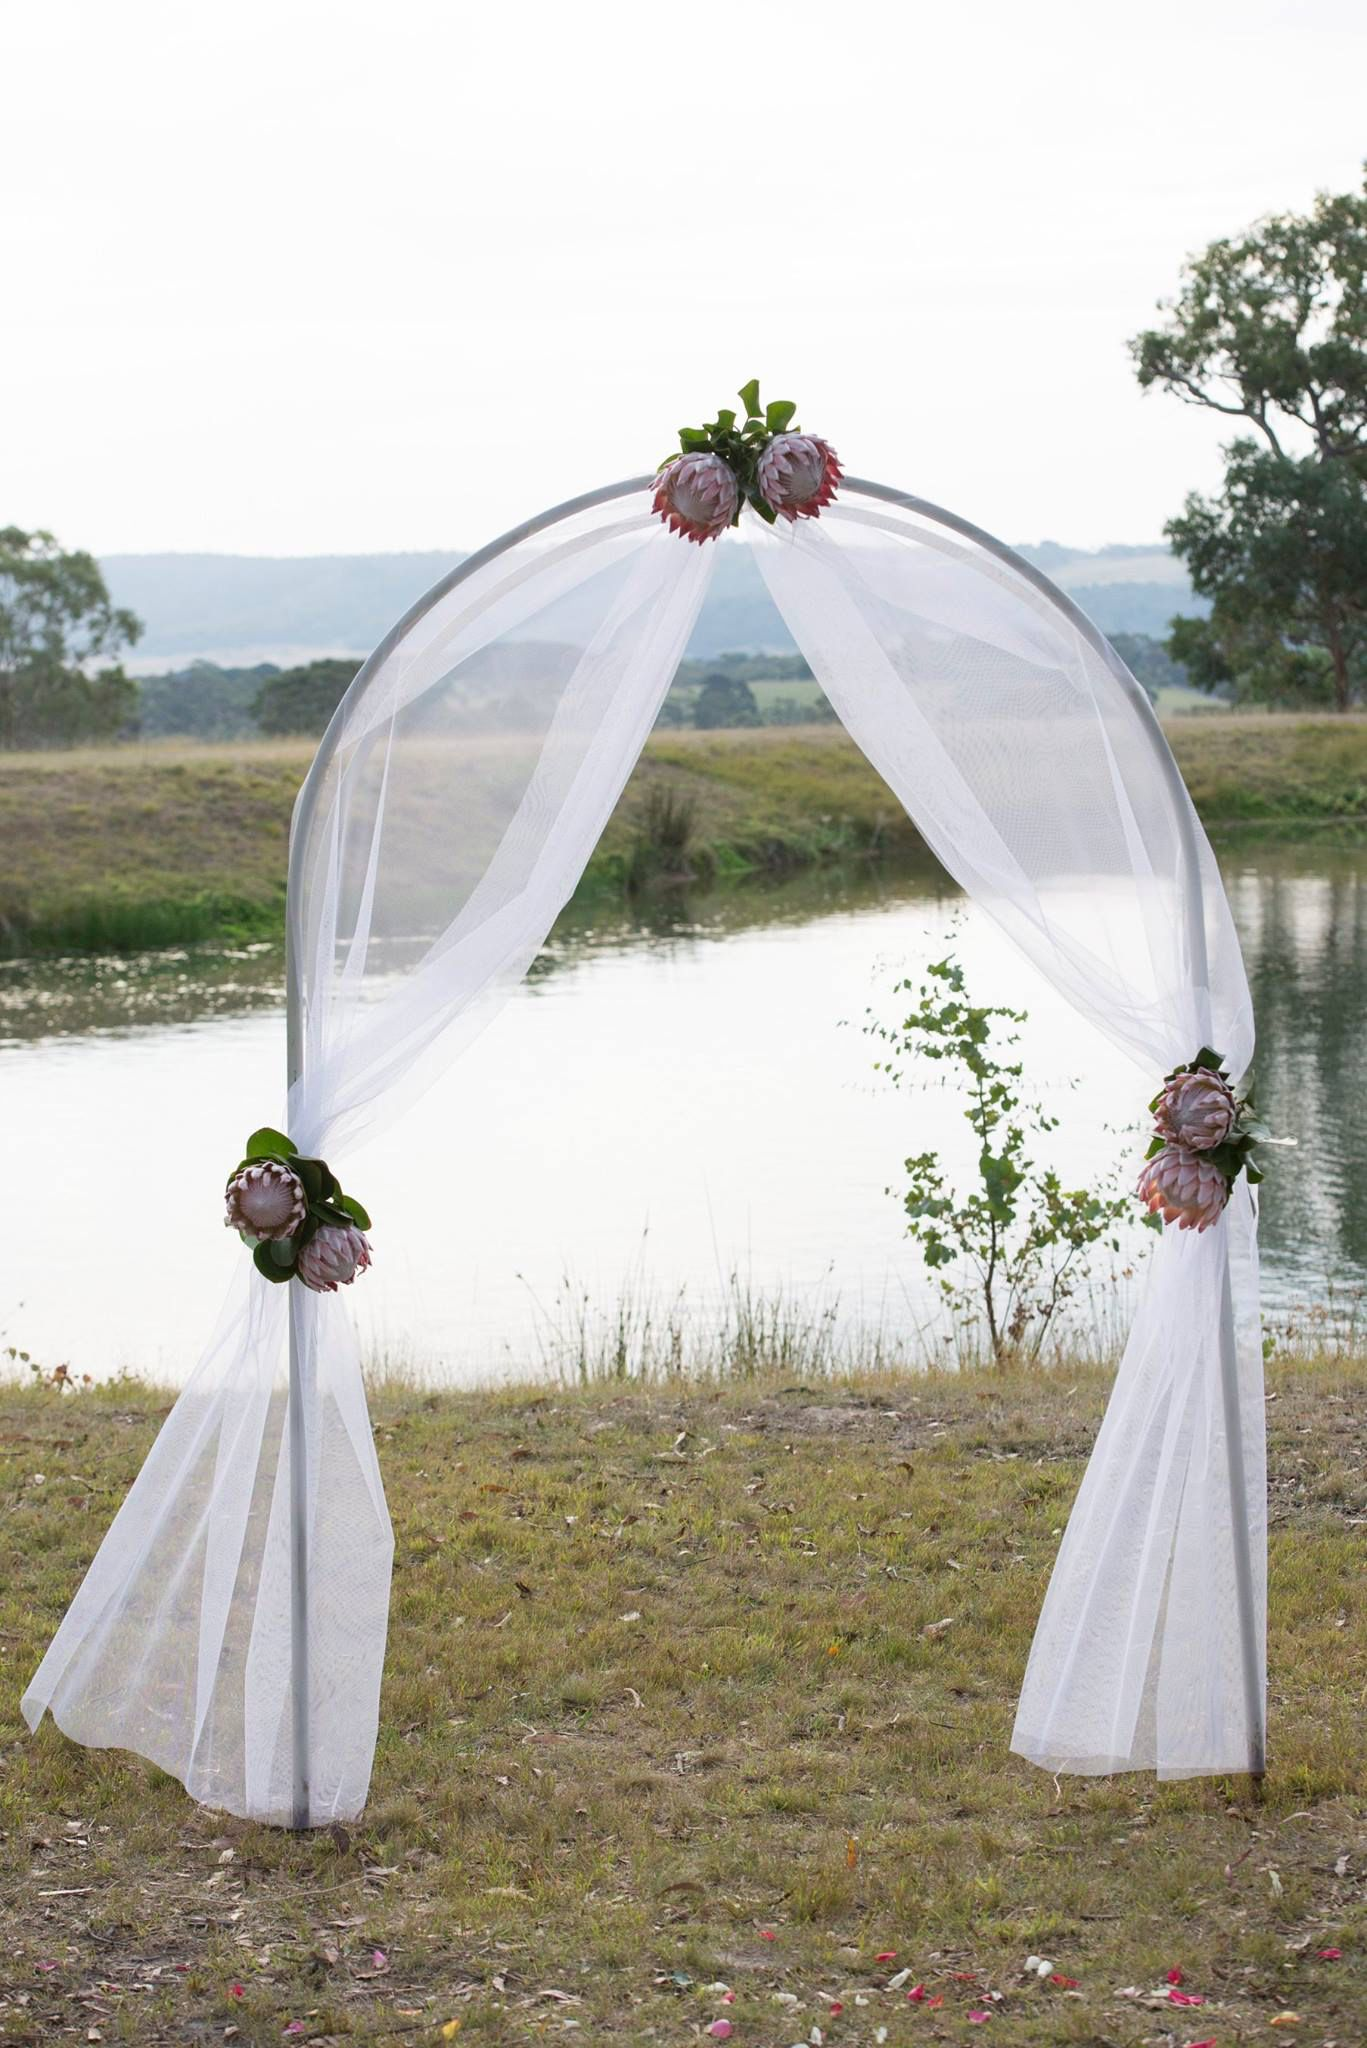 Gorgeous Ceremony Arch Decorated With Tulle And King Proteas Weddings At Peninsula Wild Flower